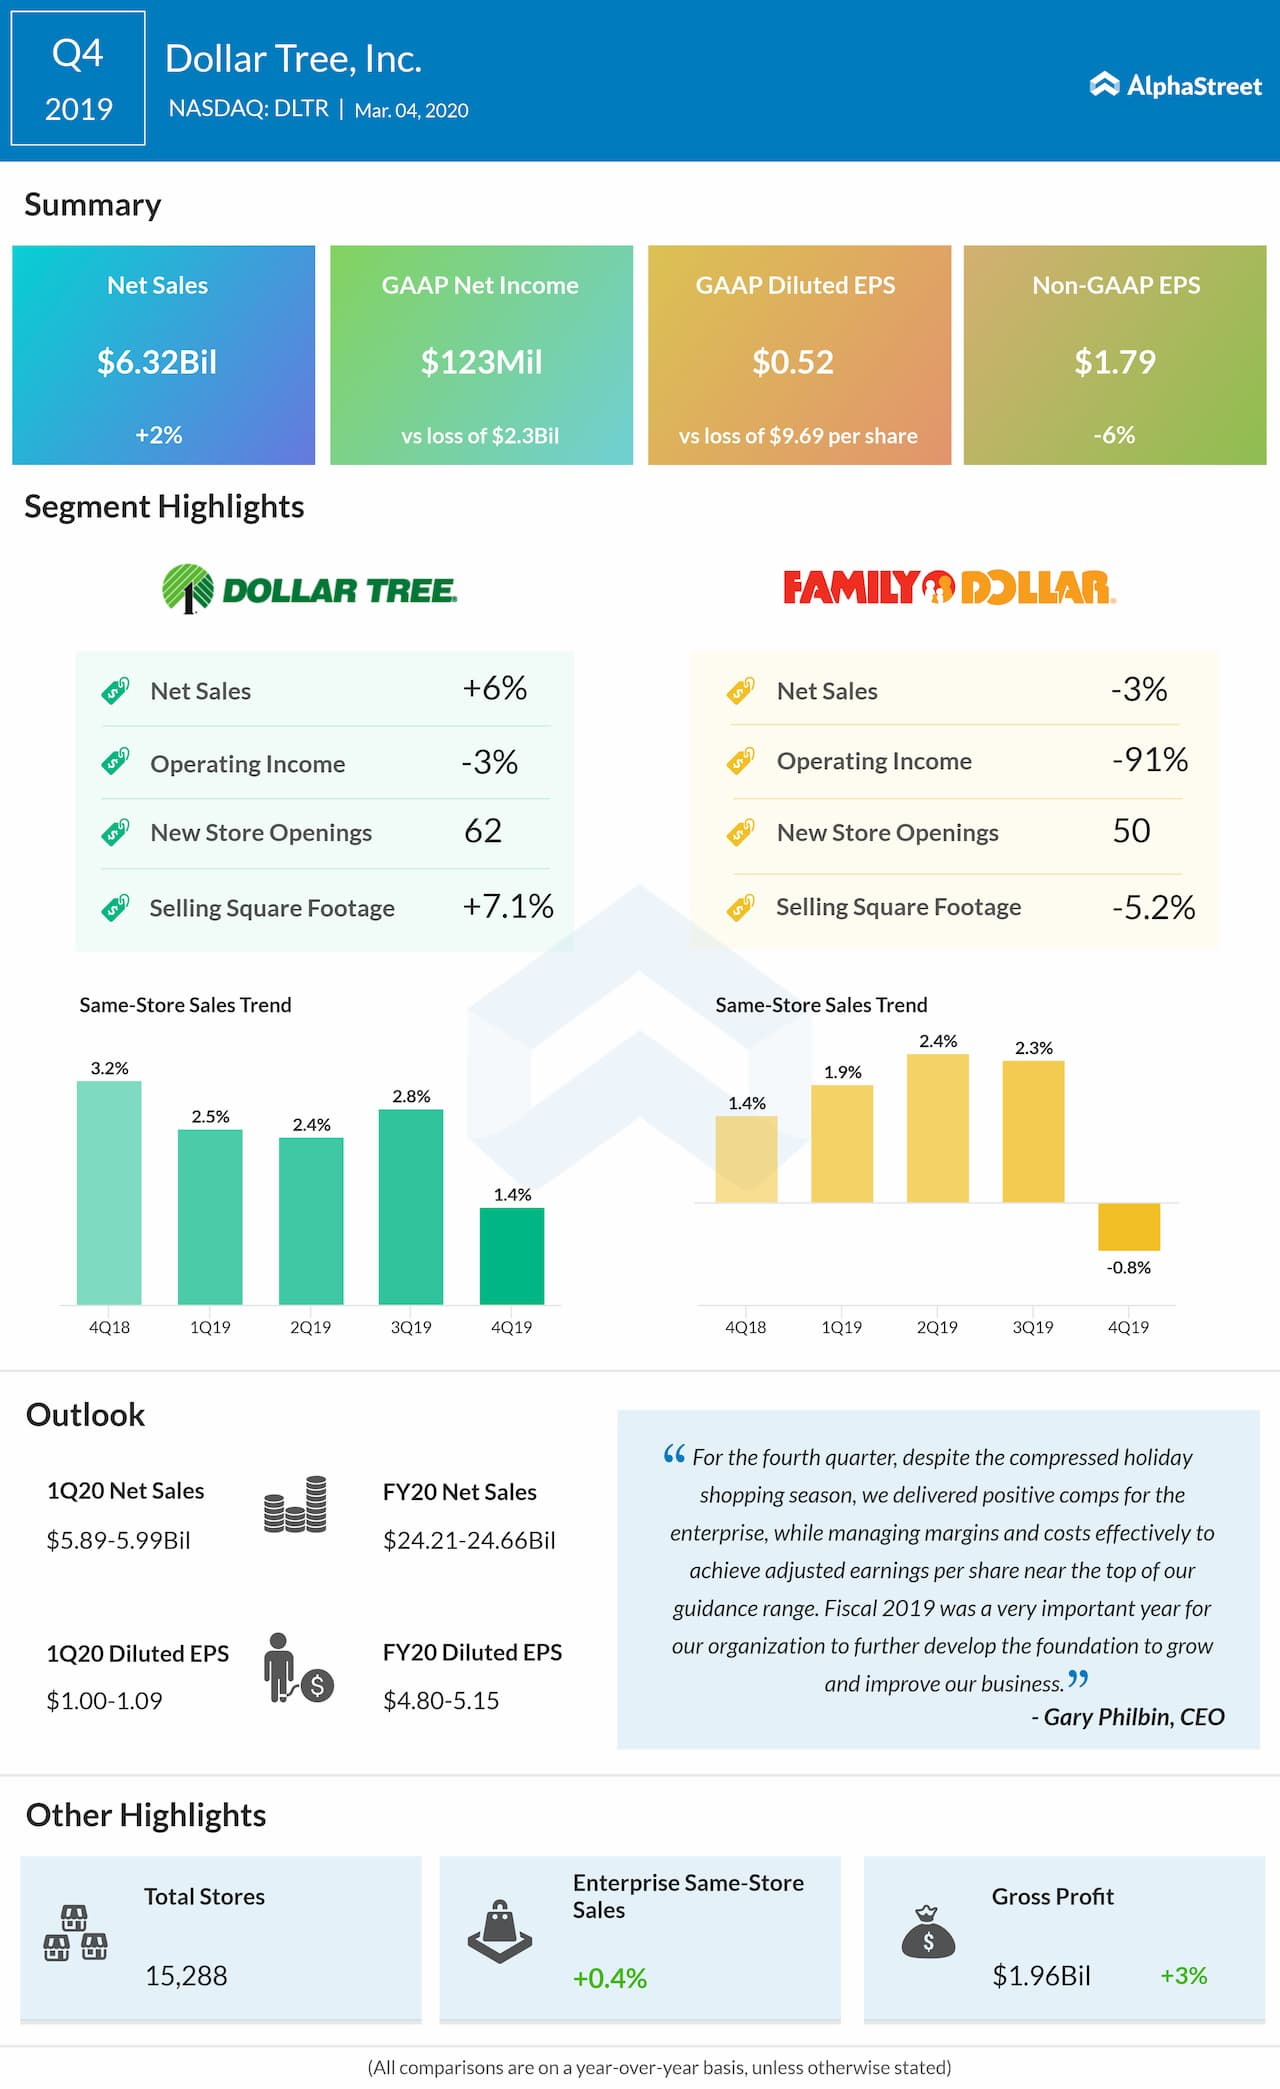 Dollar Tree (DLTR) Q4 2019 earnings review